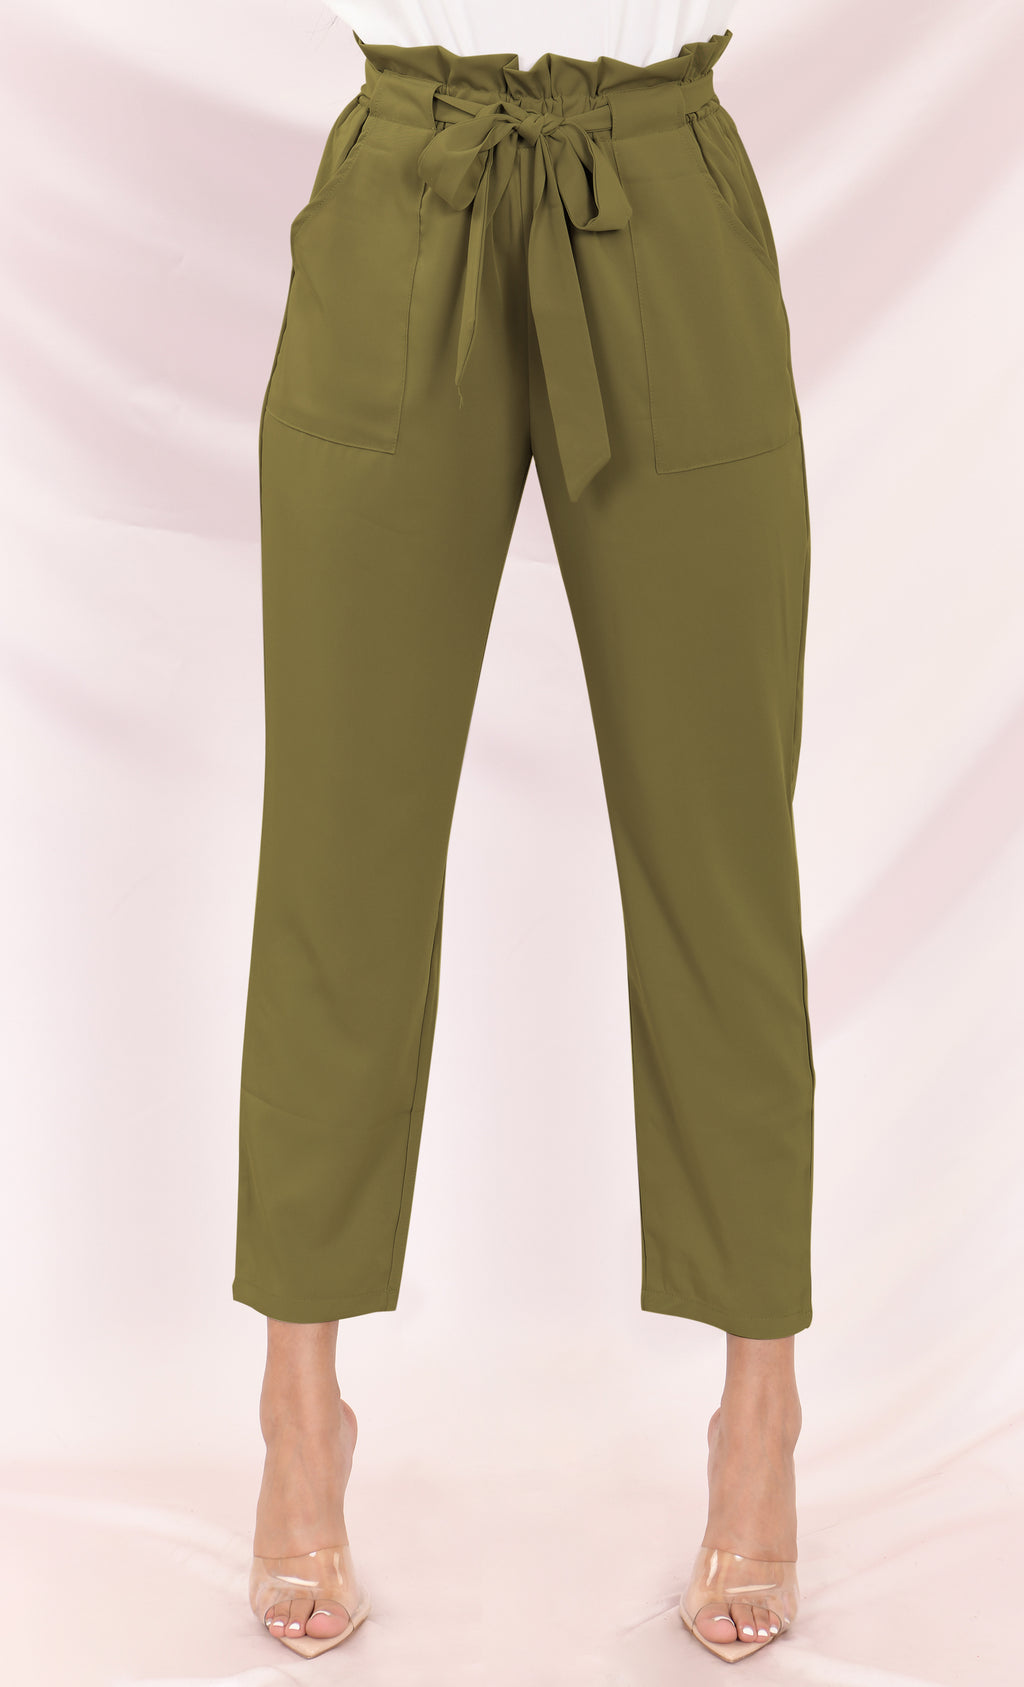 Urban Escape Olive Tie Waist Loose Tapered Leg Pocket Trouser Pants